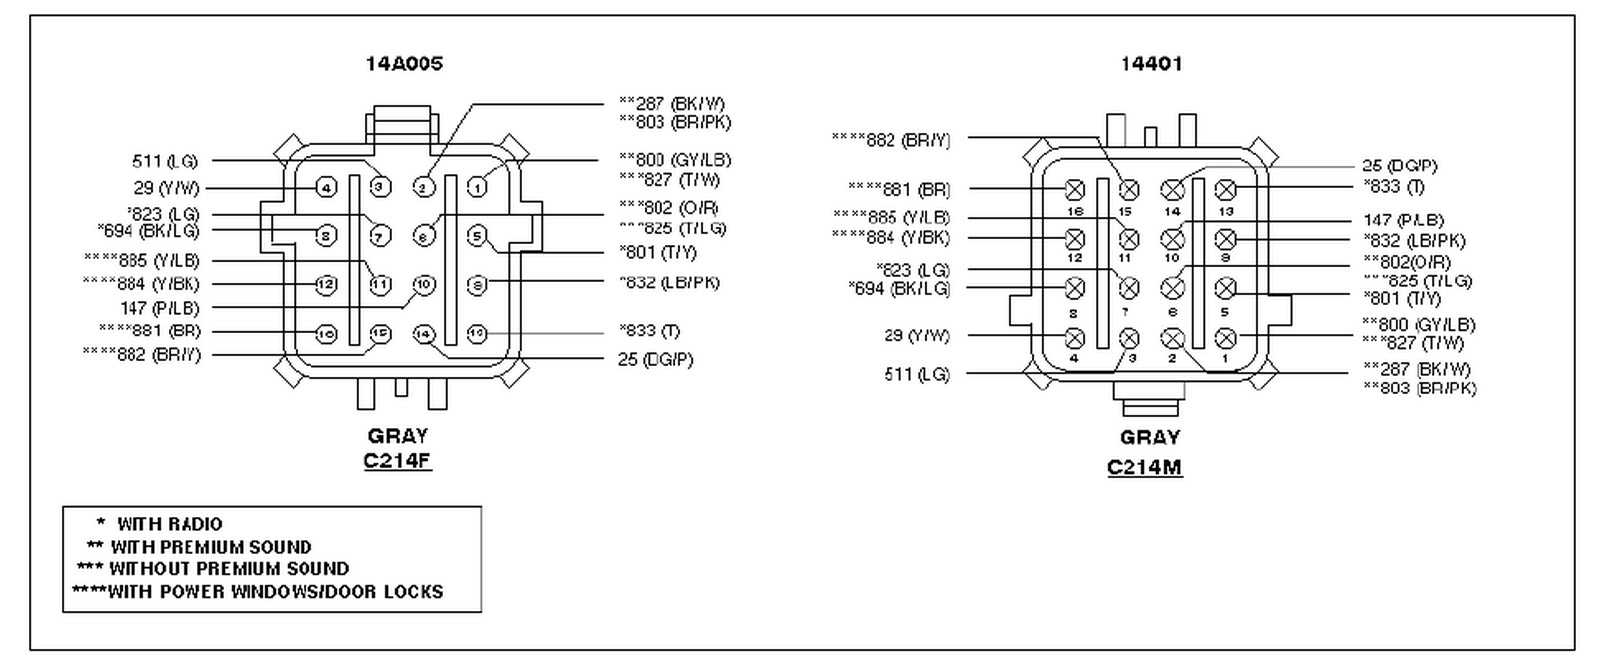 I Need A Wiring Diagram For The Radio On A 1996 Ford Windstar